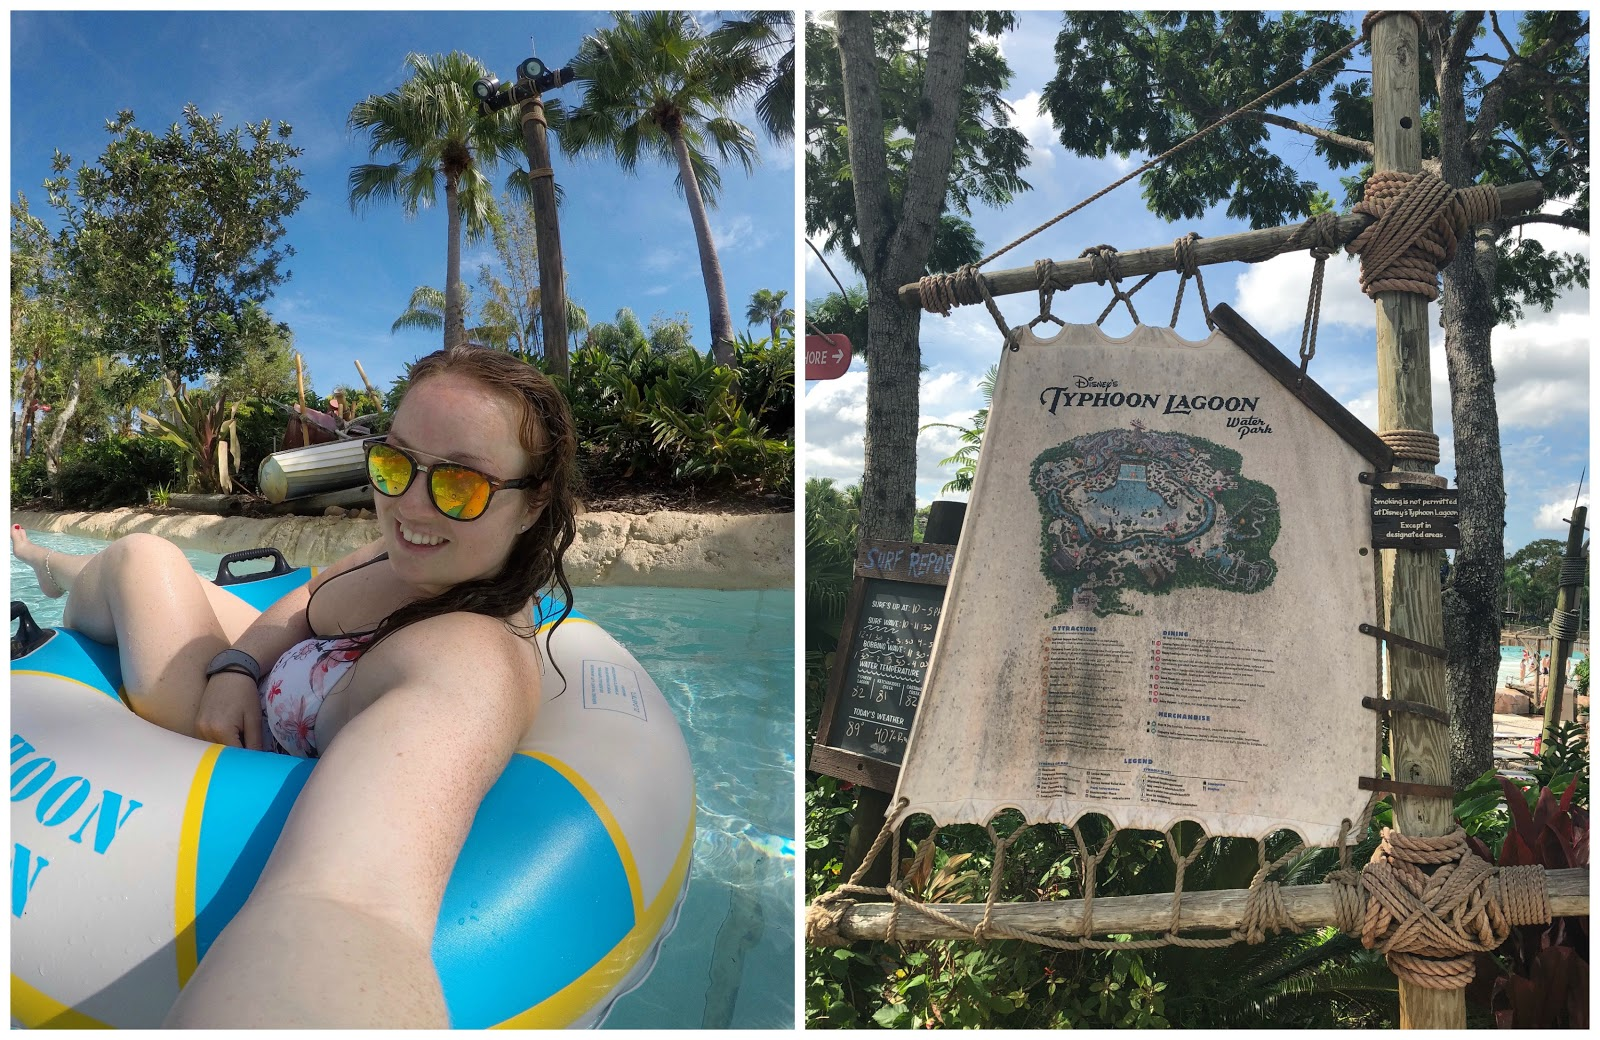 e8fb662d994 Typhoon Lagoon was easily my favourite Water Park